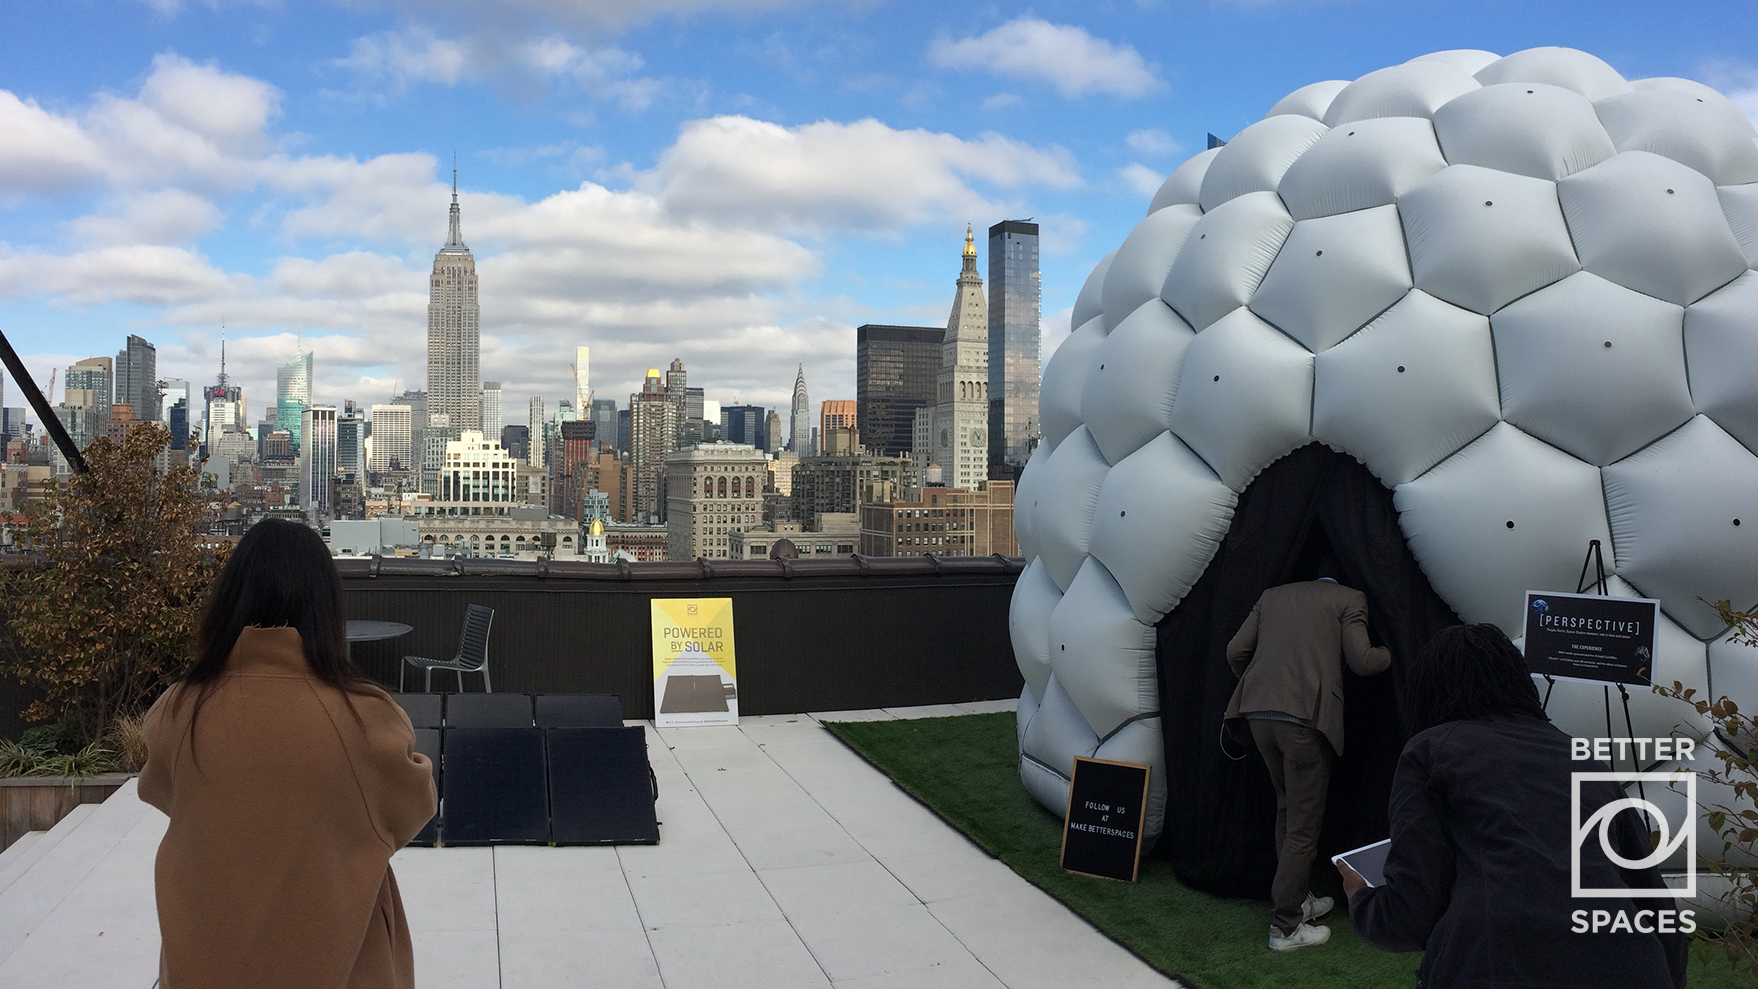 A Solar-Powered Rooftop Activation and Meditation Area   Photo Credit: Bryan Lavery  , November 2017   Download for Web  |  Download for Print